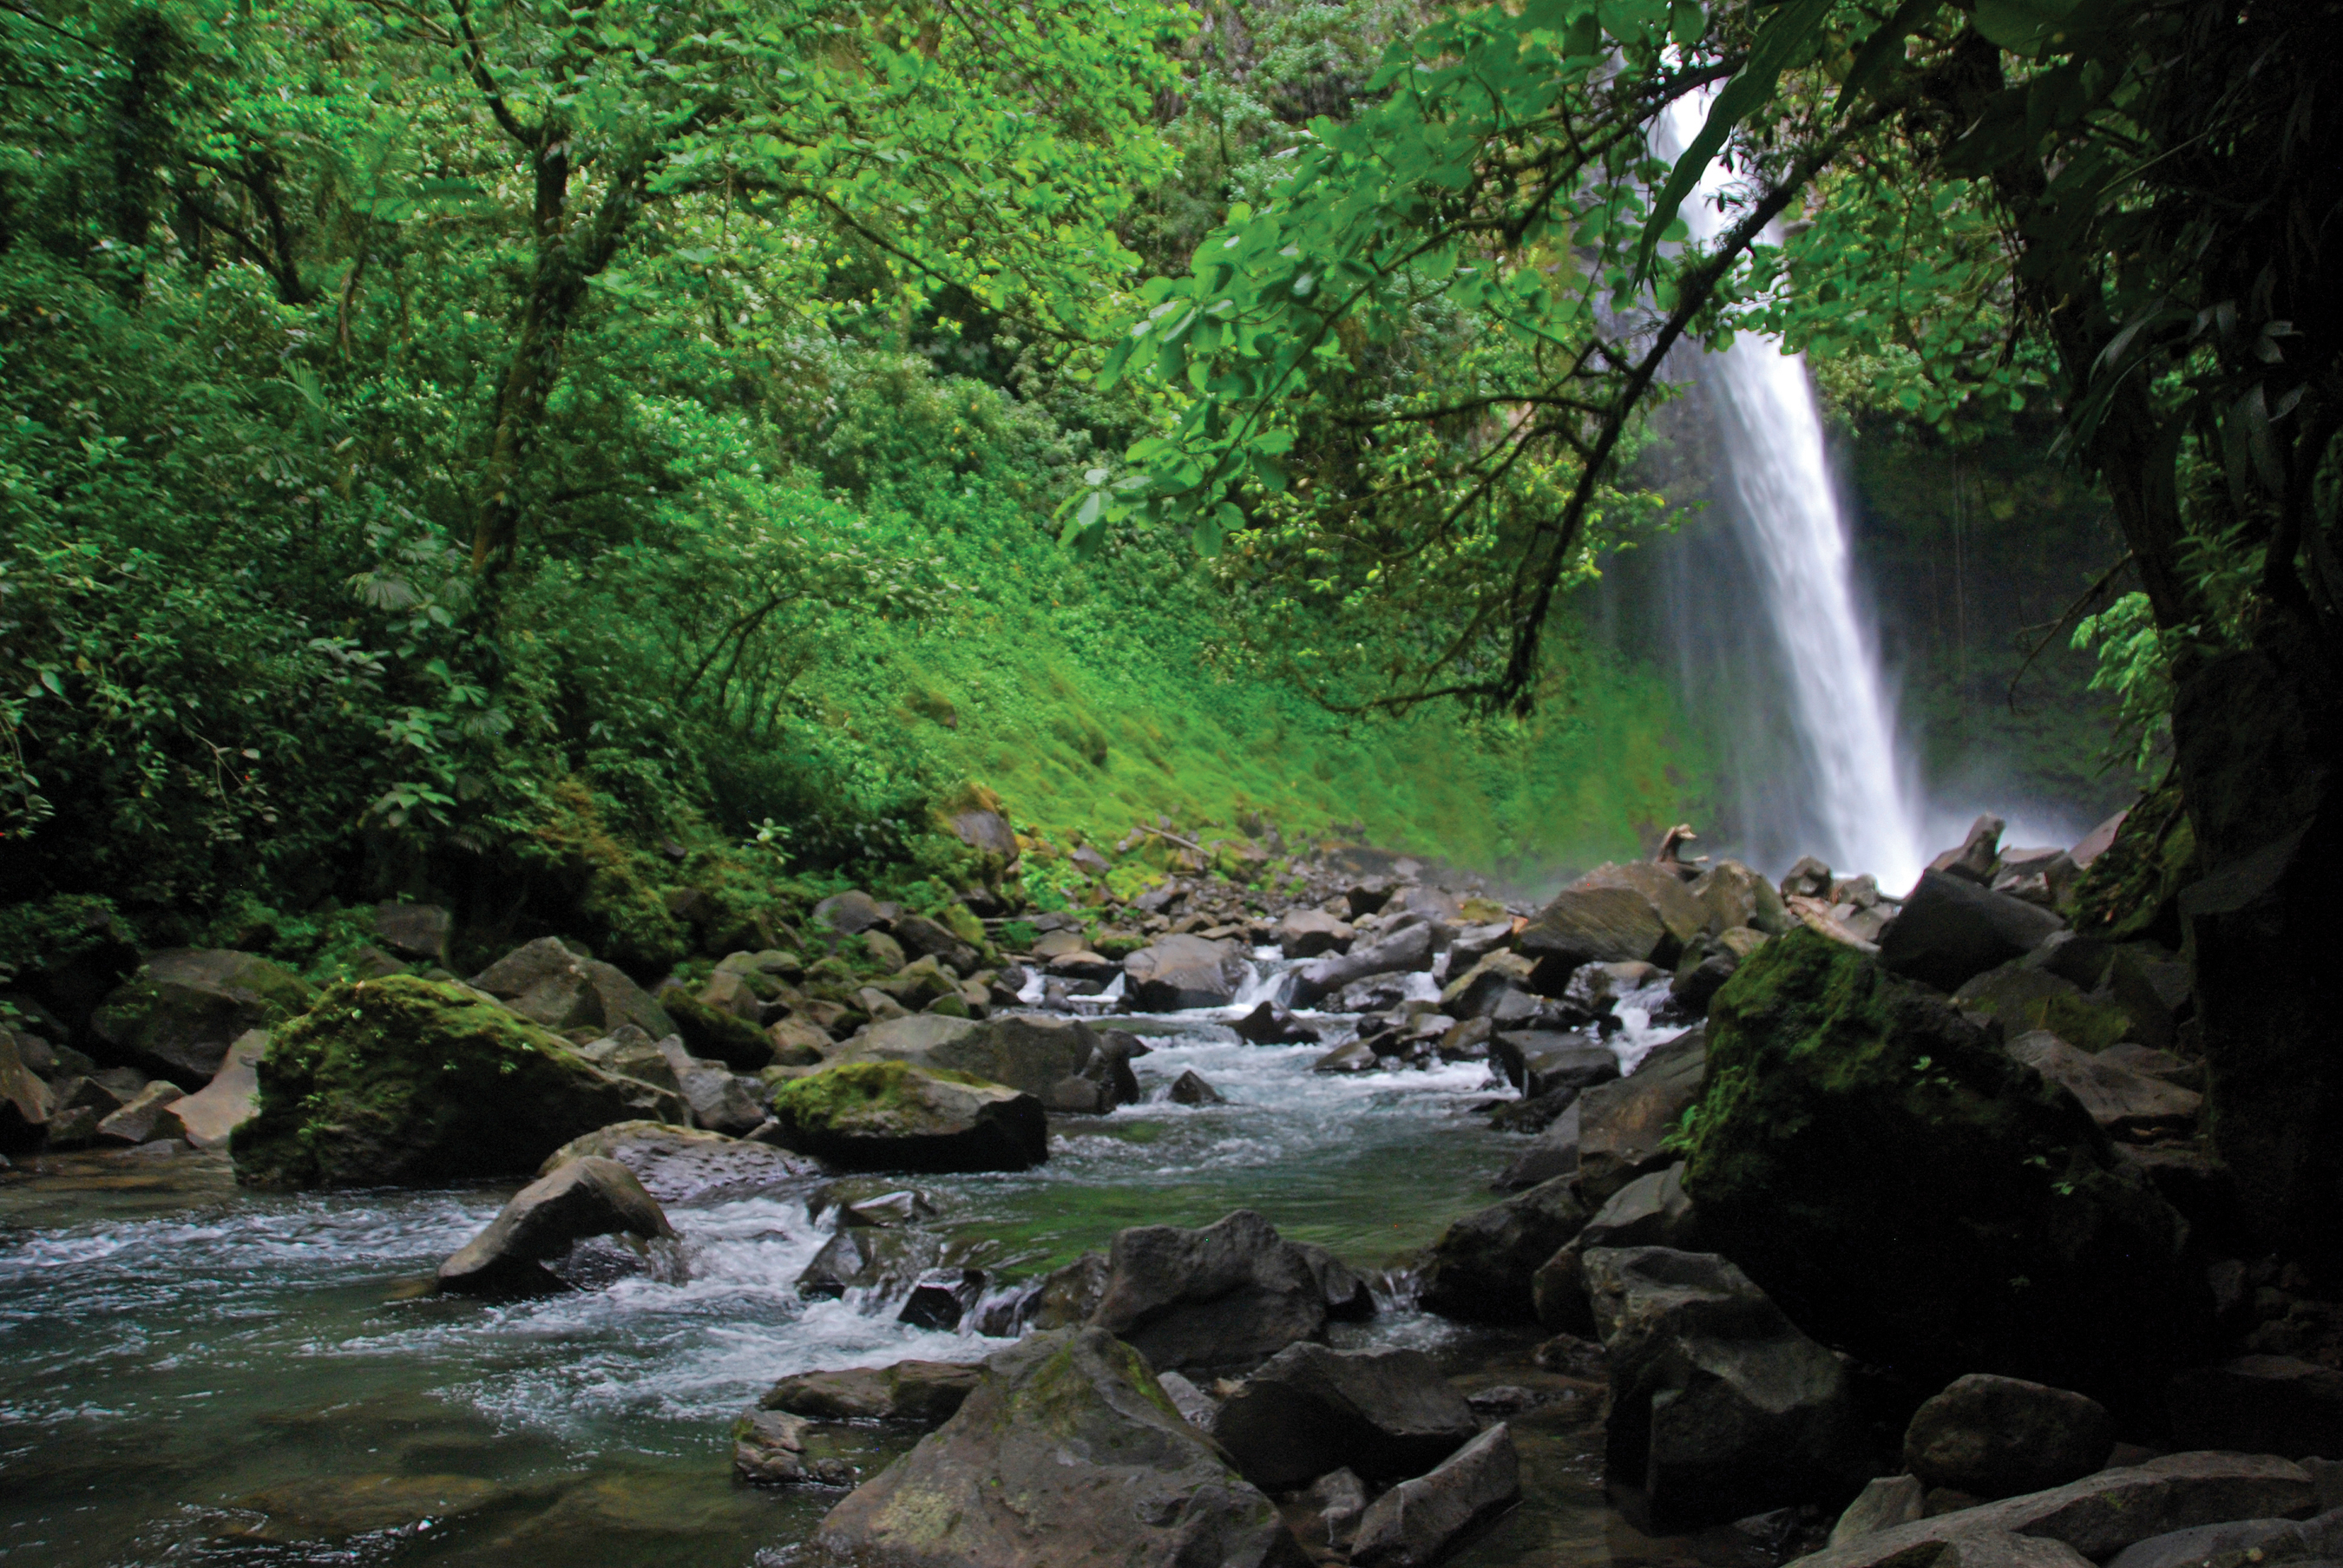 You will love the hike down to this waterfall near the town of La Fortuna because you can see all of the natural beauty of the rainforest Costa Rica